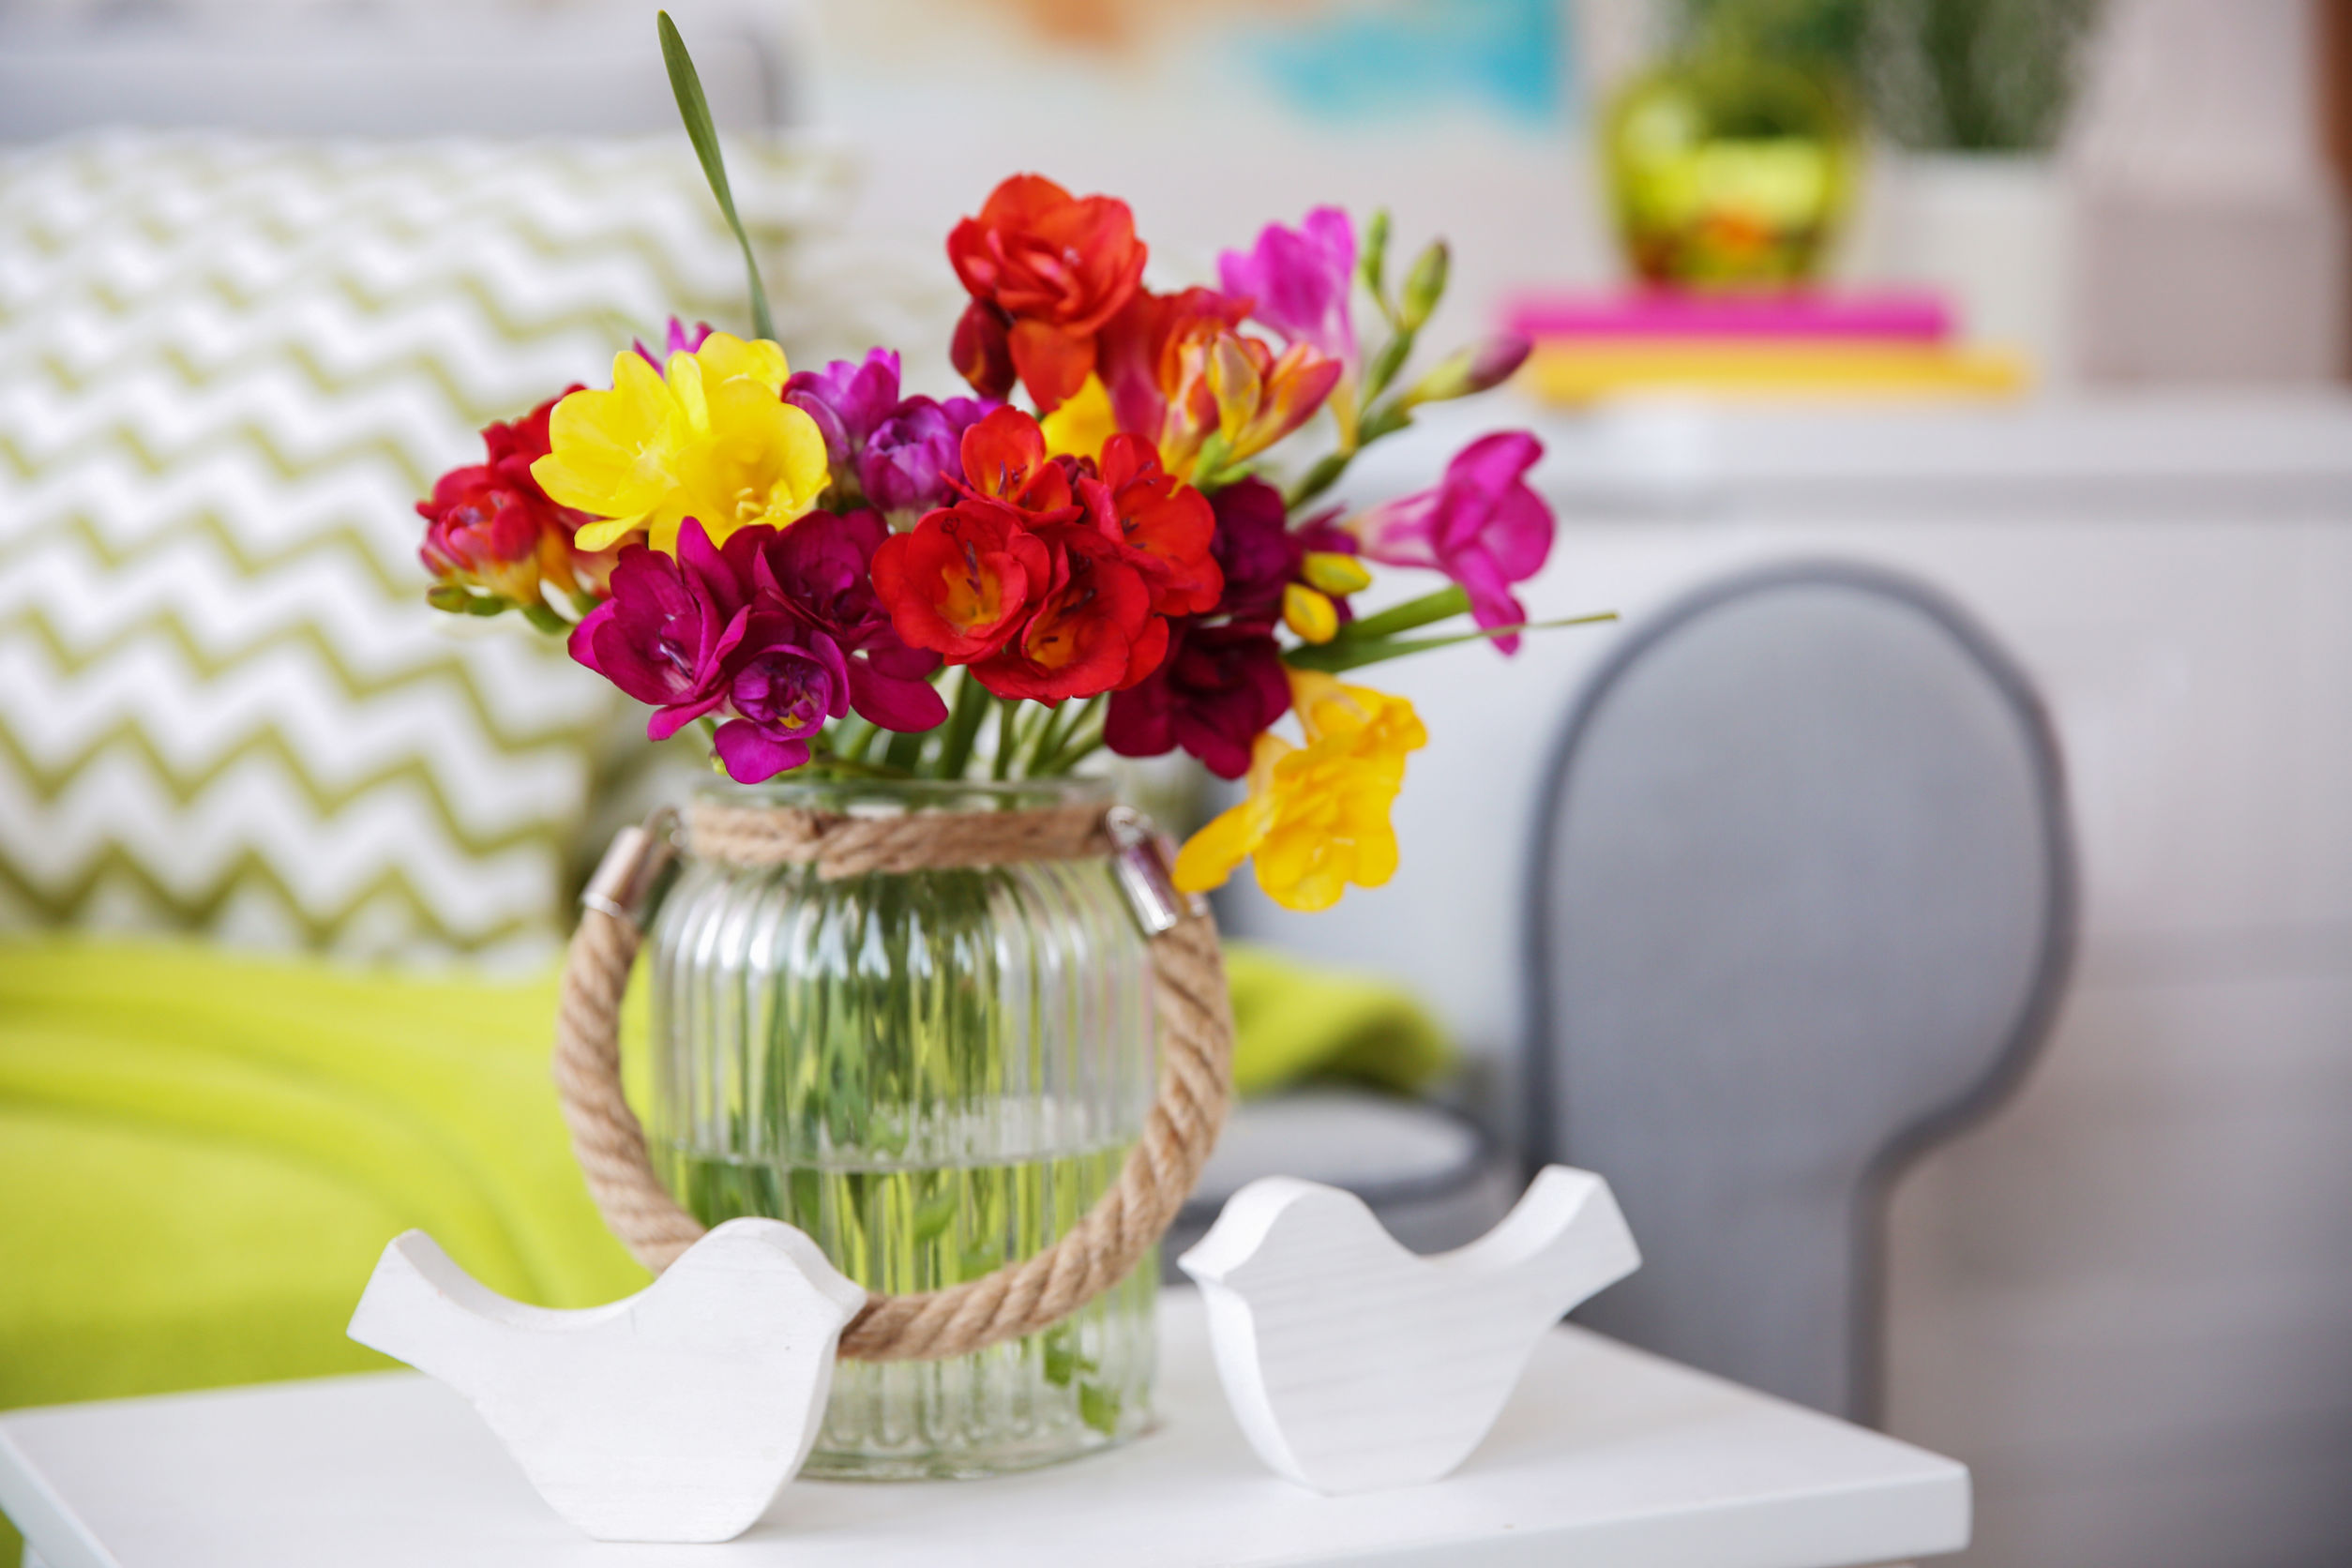 Decorate Your Condo With Beautiful Flowers Inspired By Women